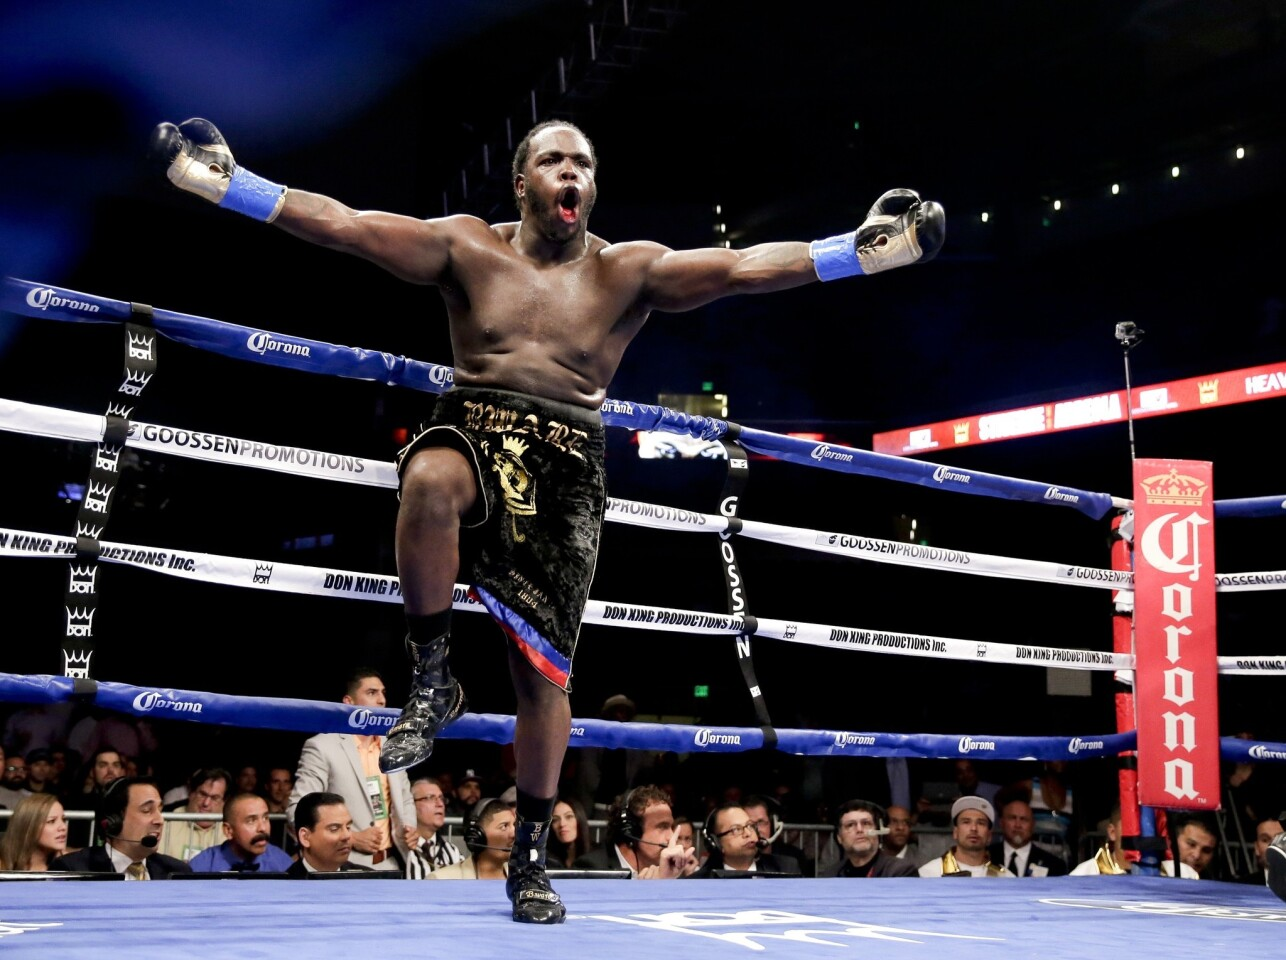 Bermane Stiverne enjoys the moment after winning the WBC heavyweight belt by stopping Chris Arreola in the sixth round Saturday at Galen Center.